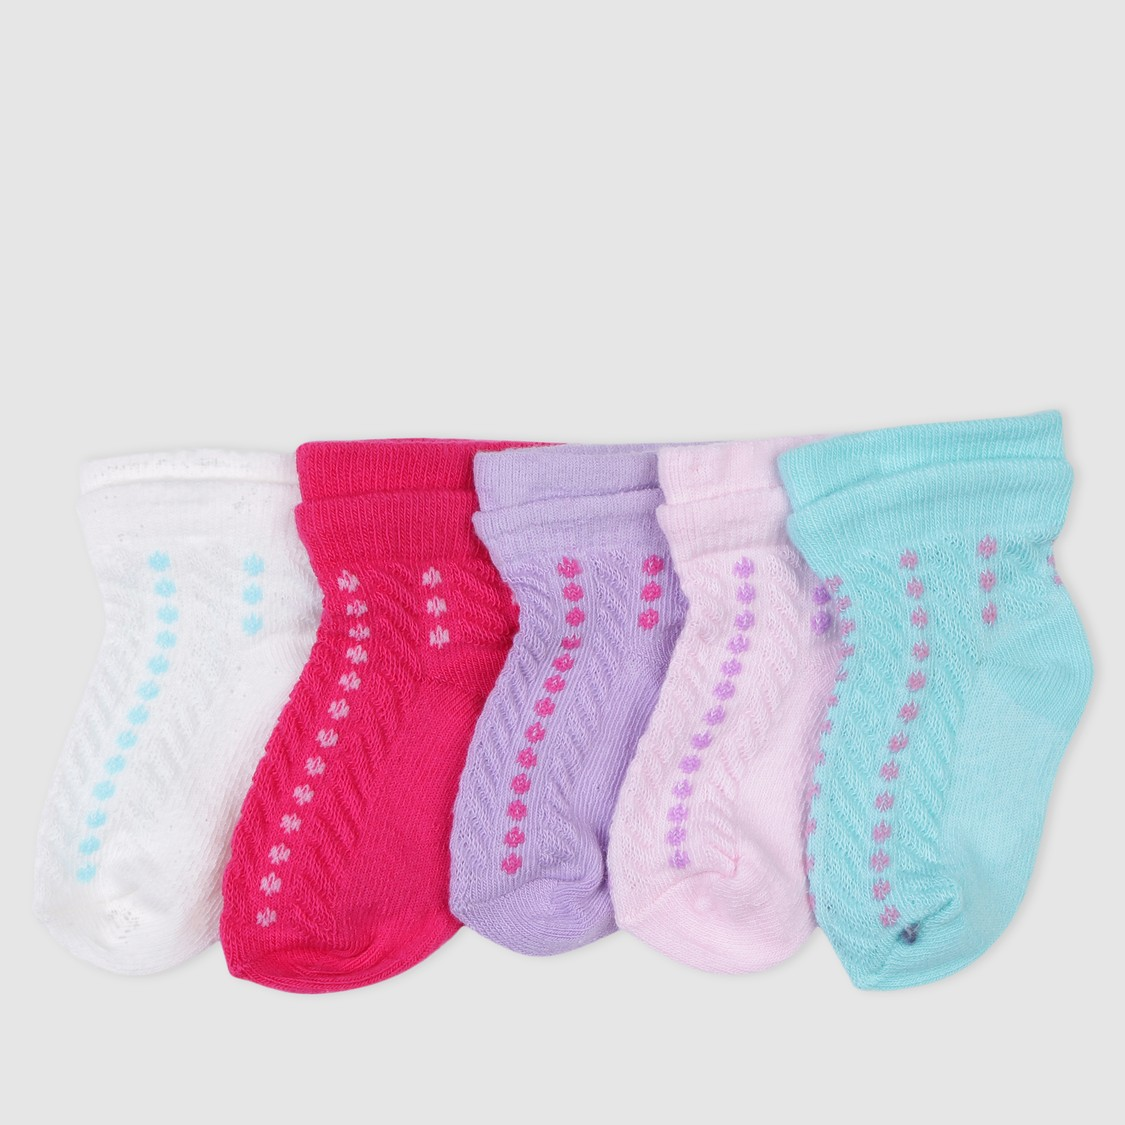 Woven Ankle Length Socks - Set of 5